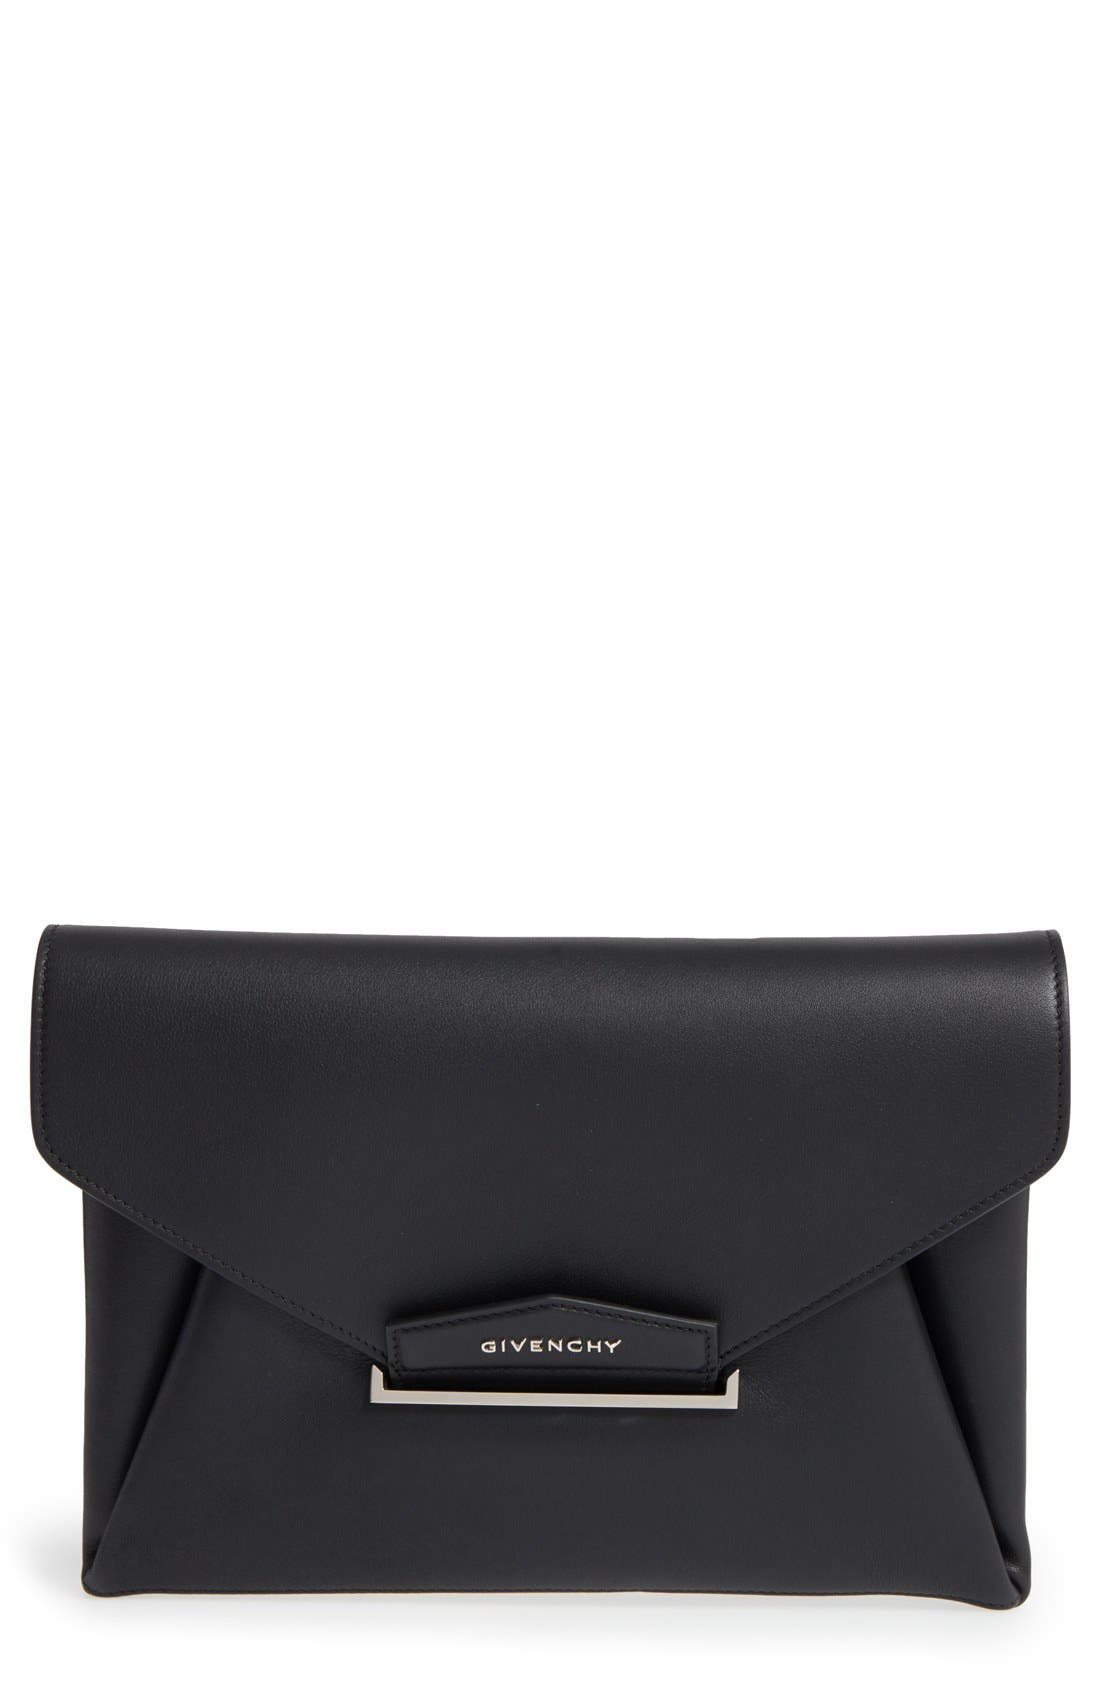 Givenchy 'Medium Antigona' Leather Envelope Clutch